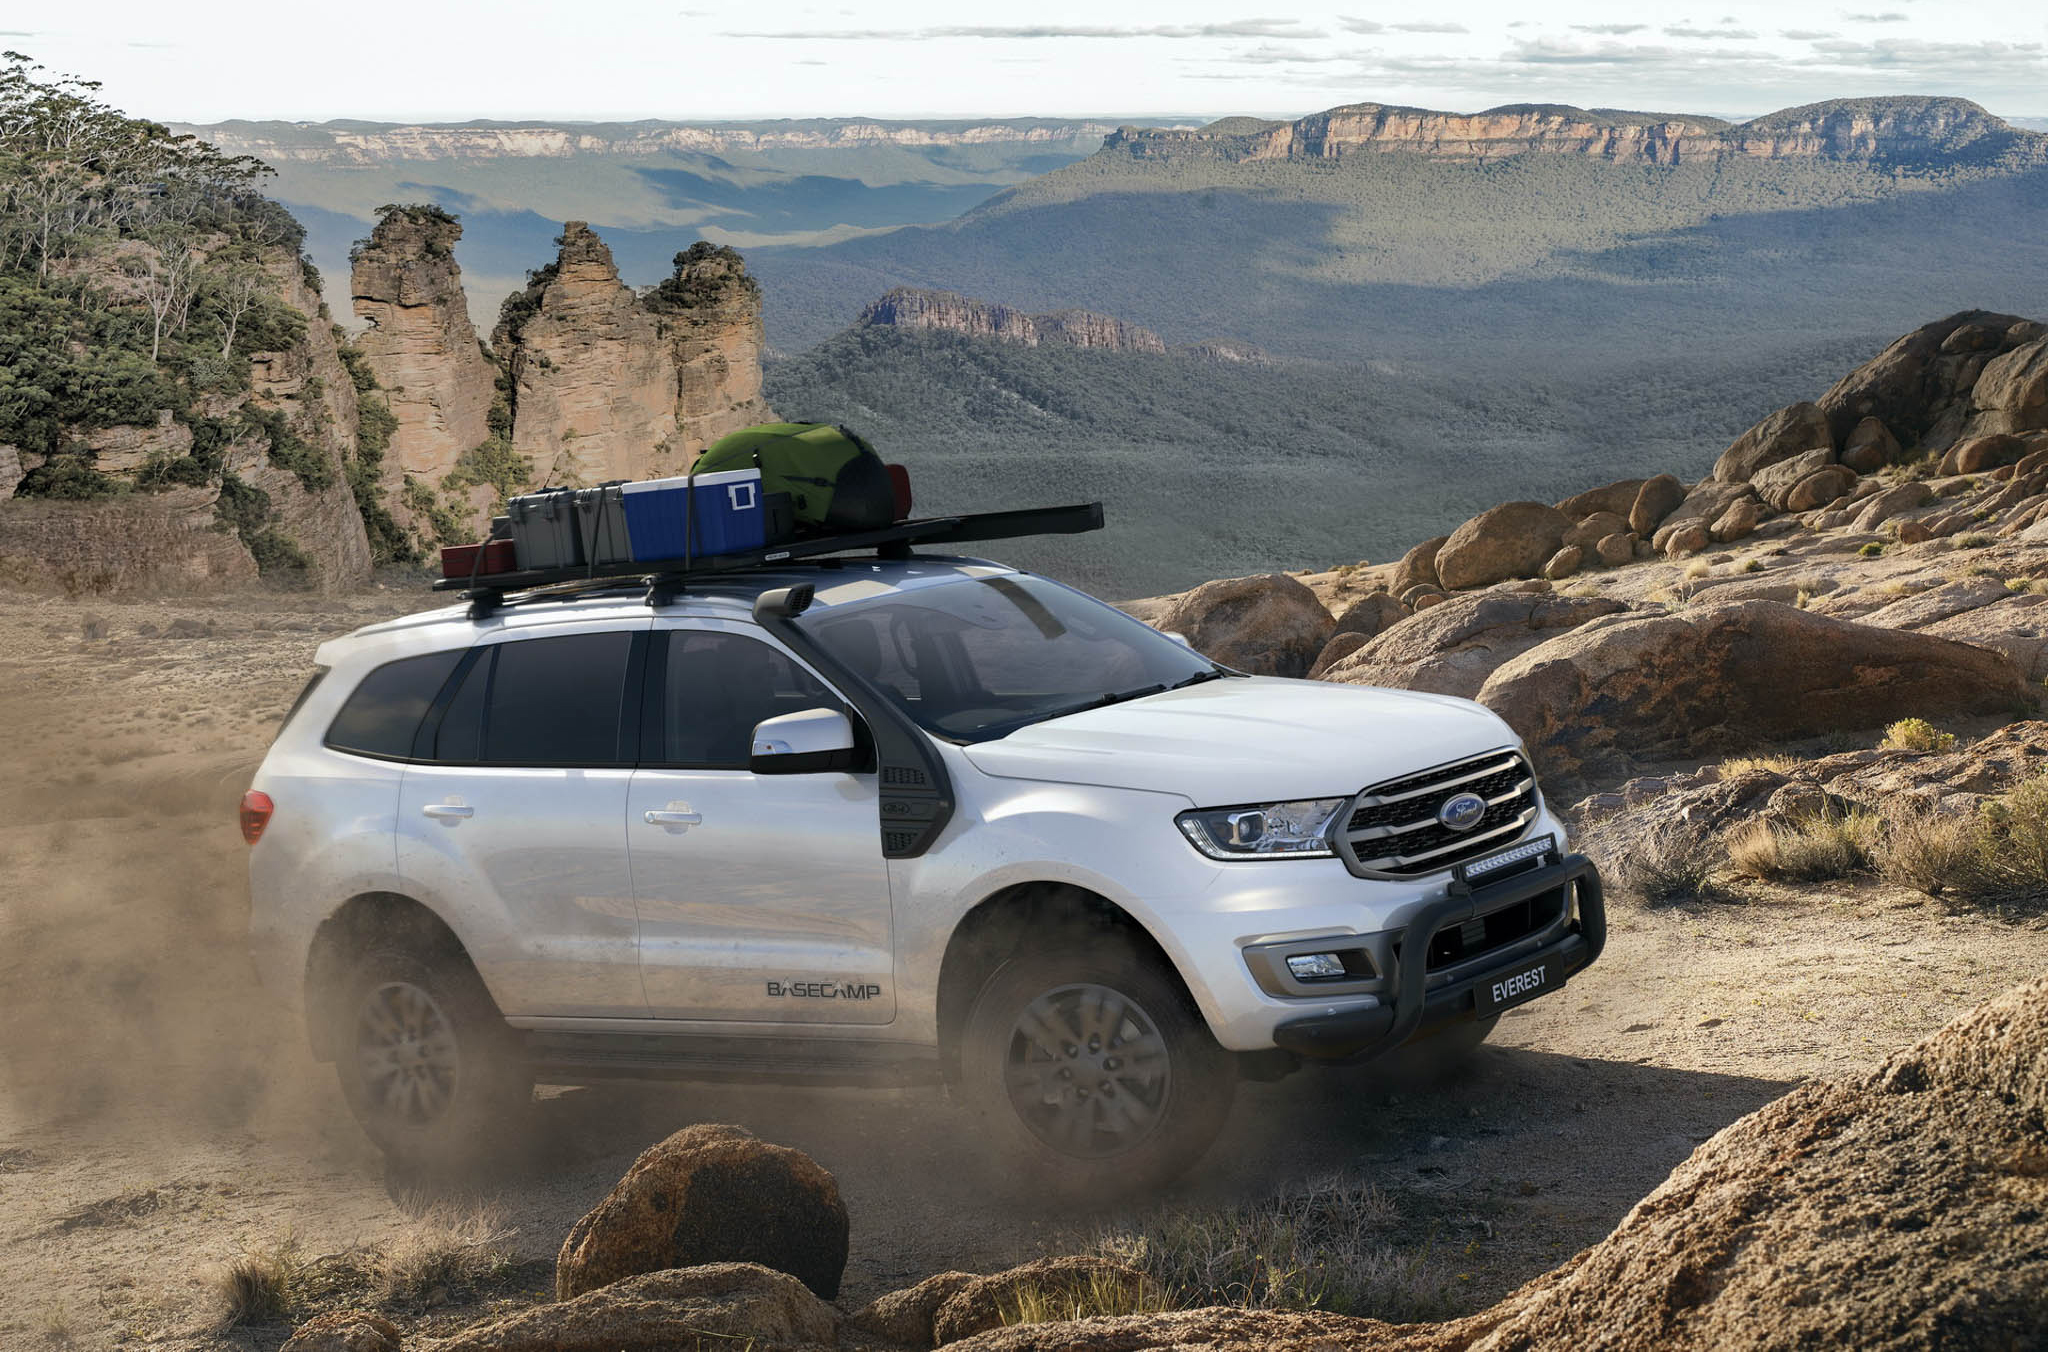 ford-everest-them-phien-ban-doc-danh-cho-ai-thich-cam-trai-gia-cao-nhat-1-1-ty-dong